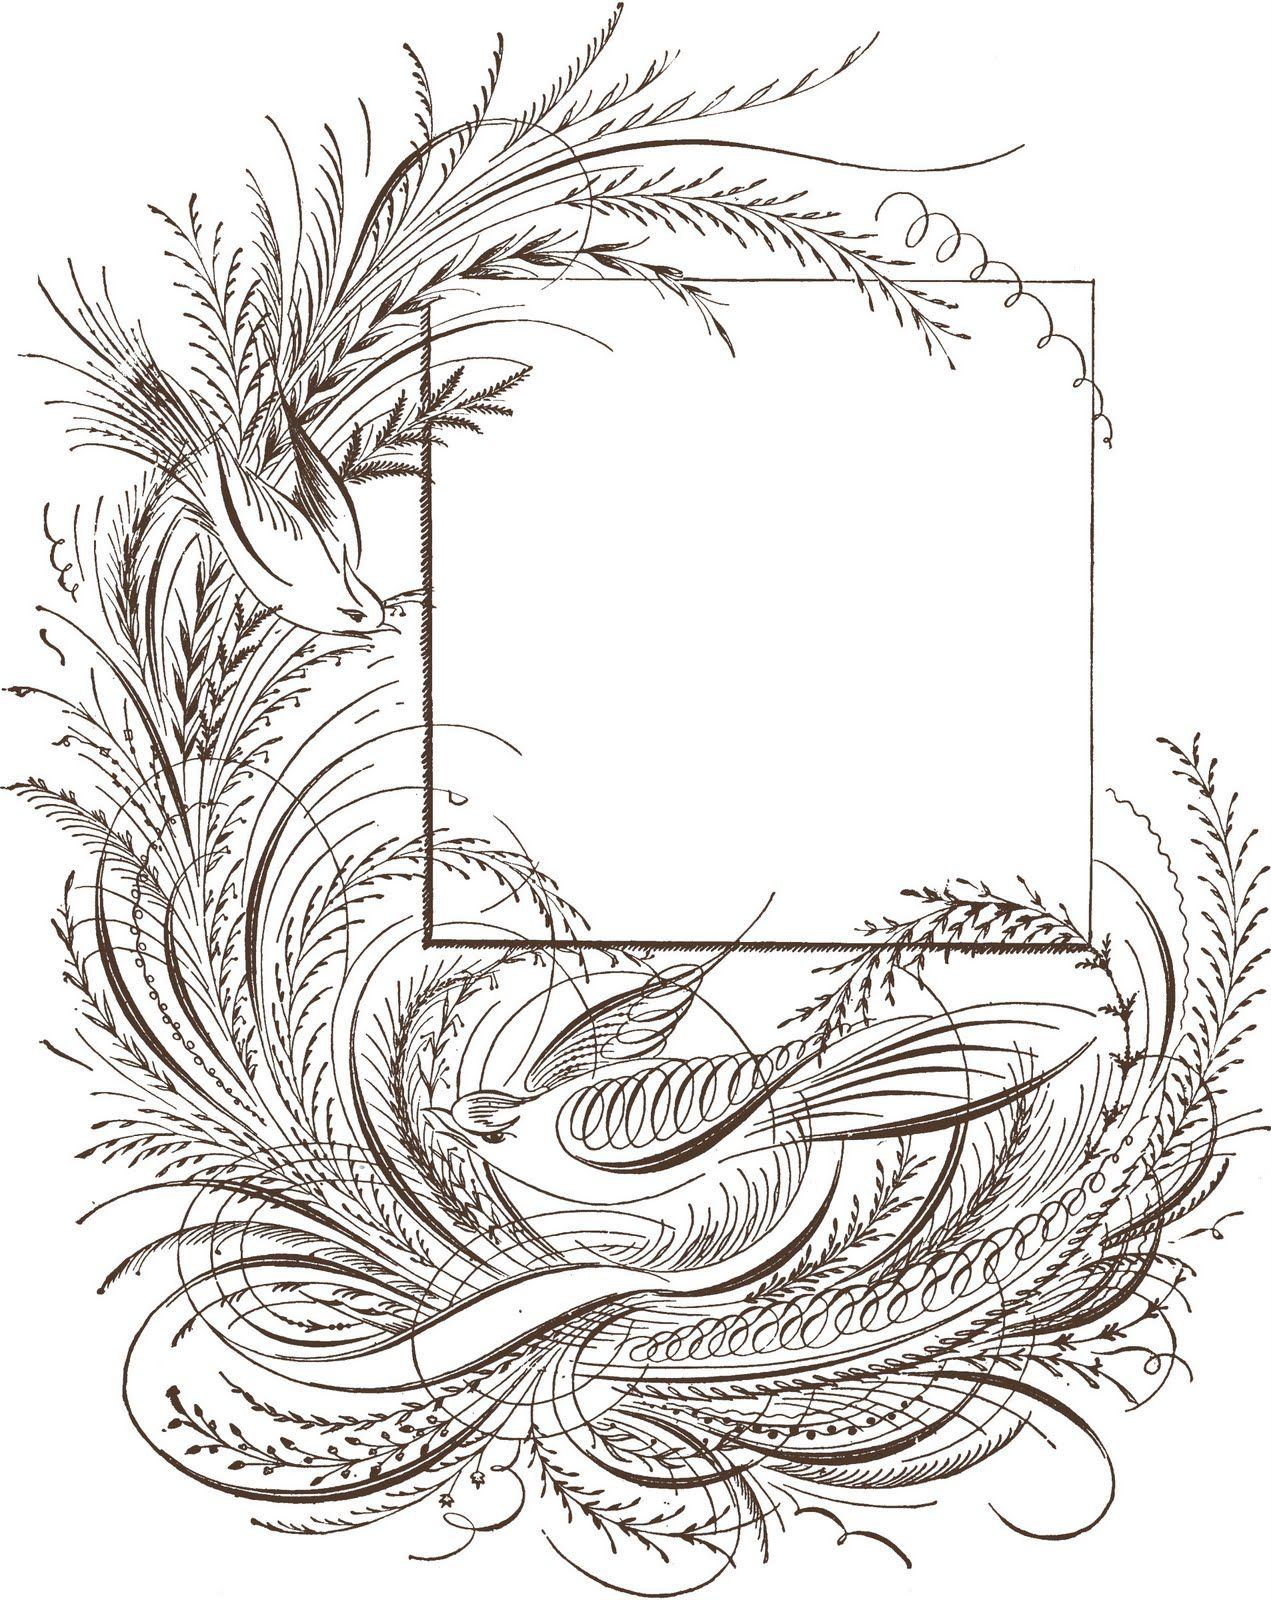 Annabella 67 Art Line Design : Free flower line drawings bsquared designs clip art